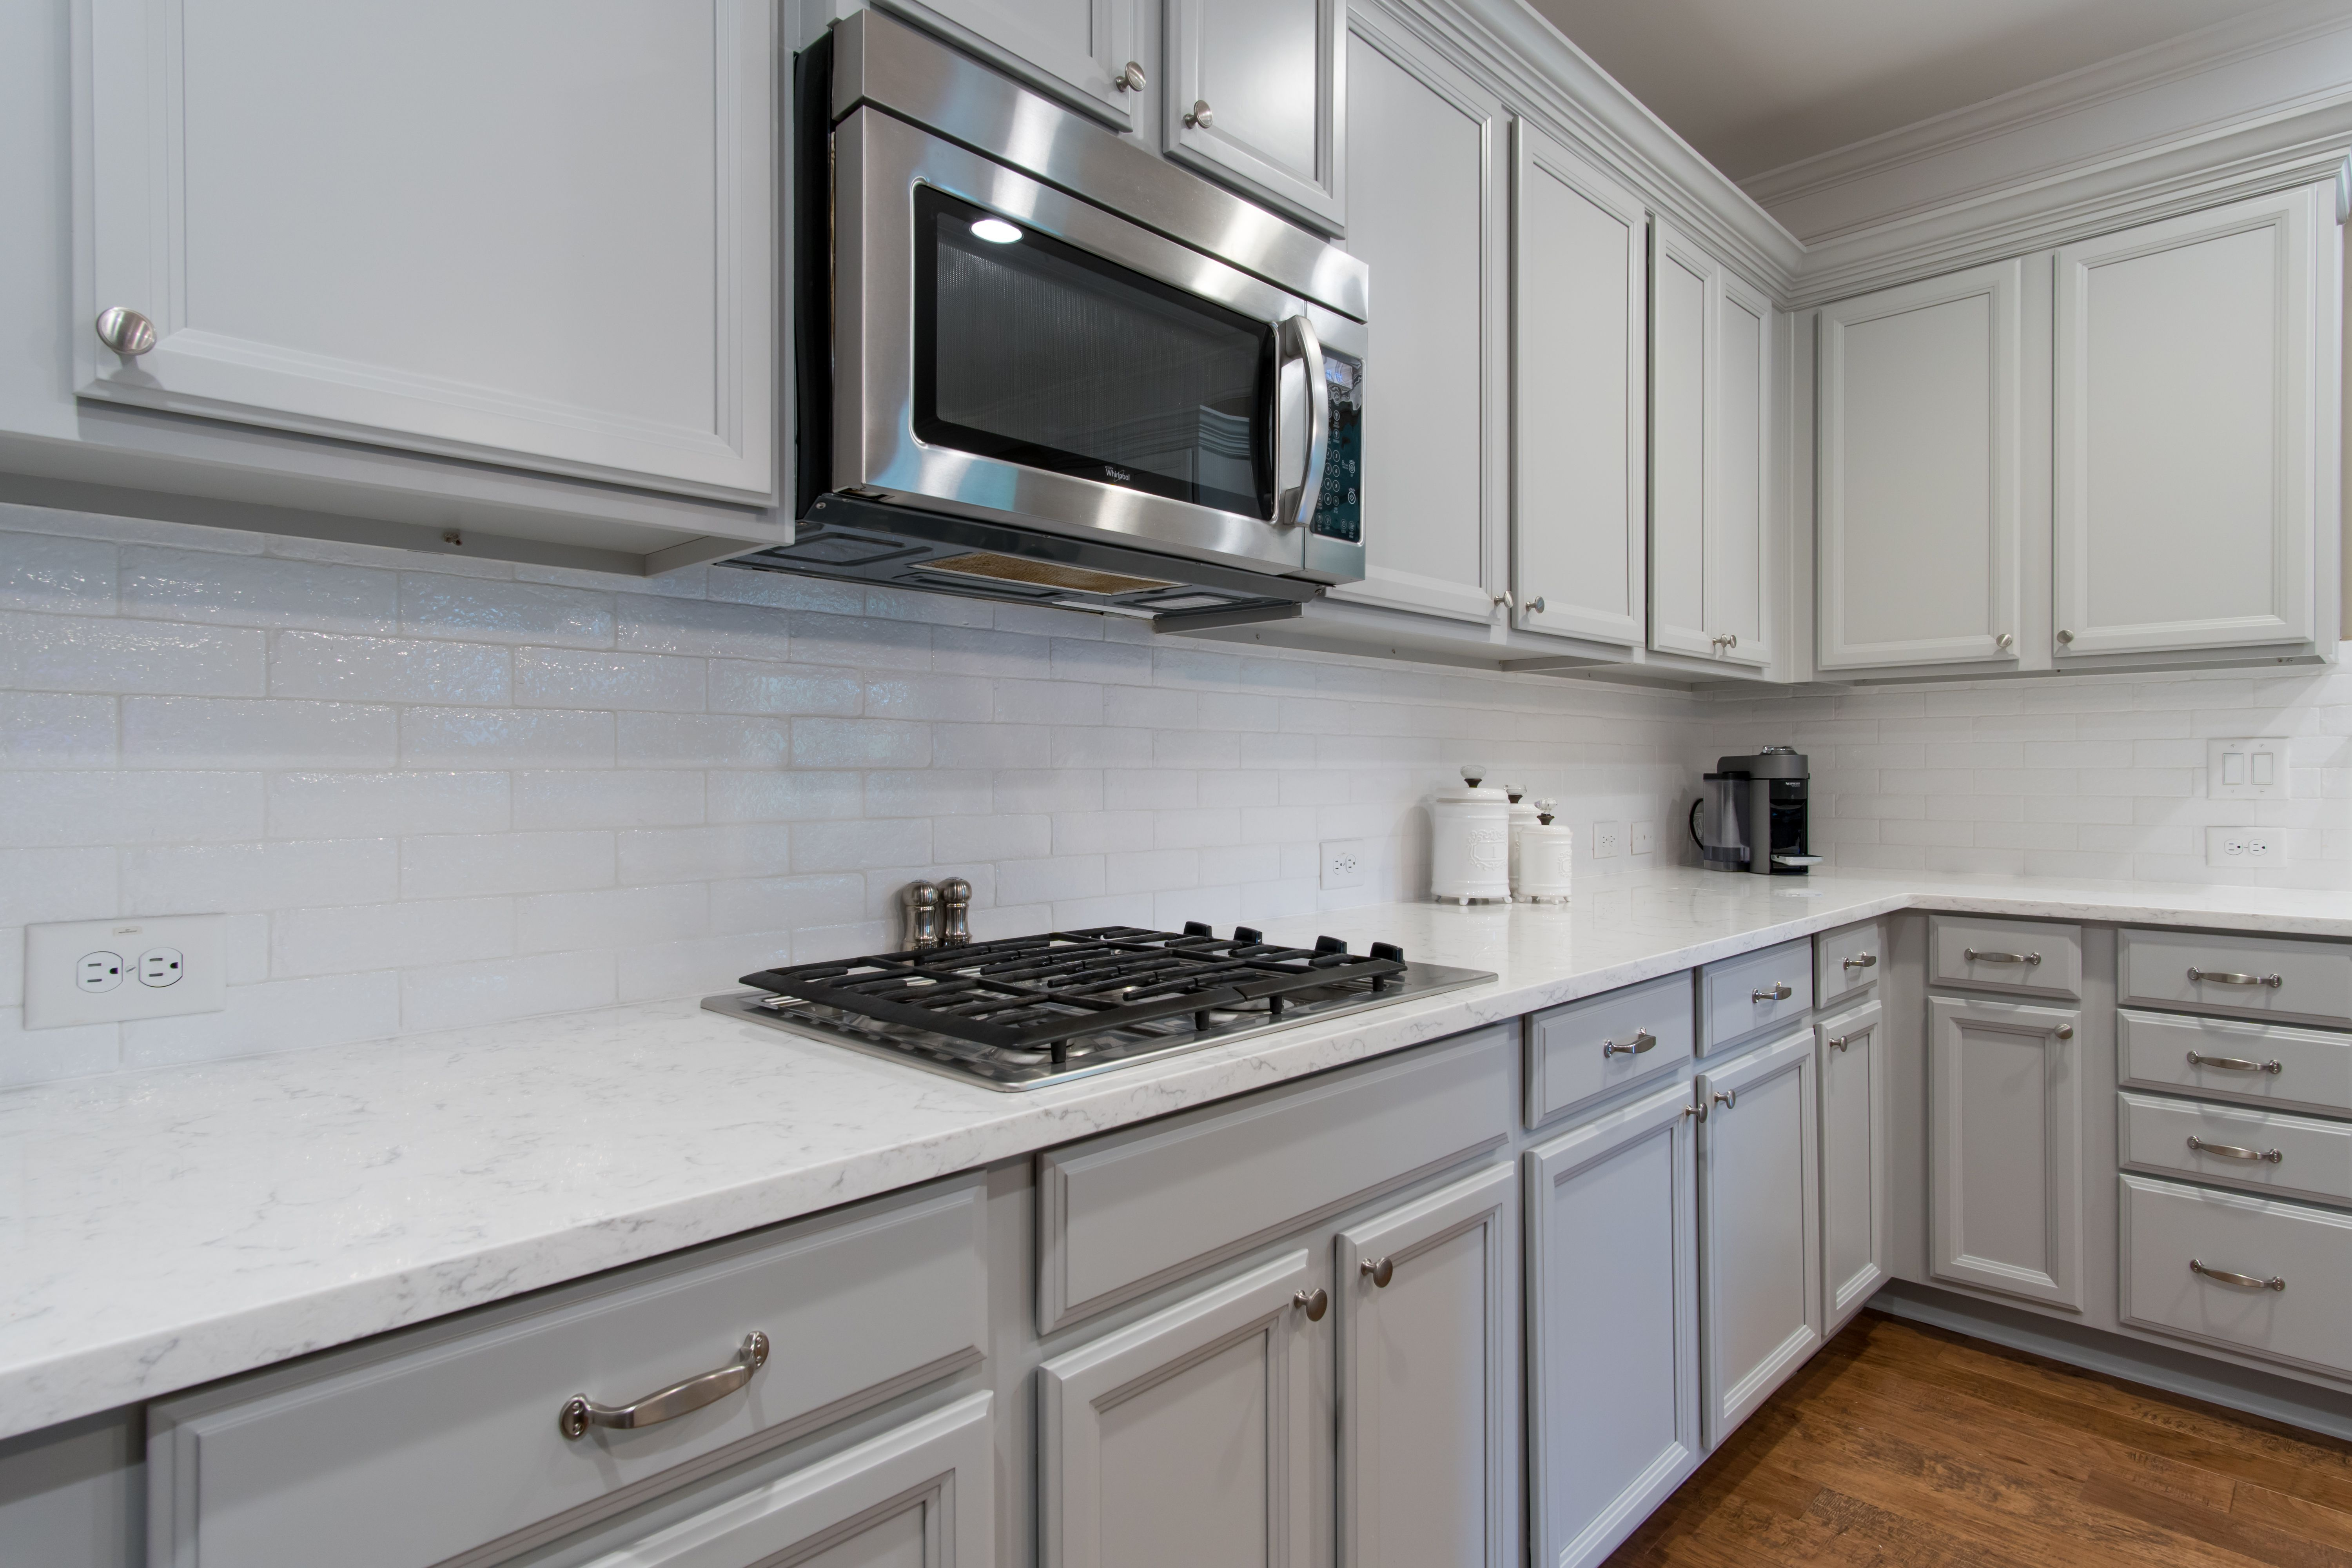 Refinished Cabinets In A Light Gray With New Silver Hardware Quartz Countertops Stainless Steel Appliances And Kitchen Design Refinishing Cabinets Countertops